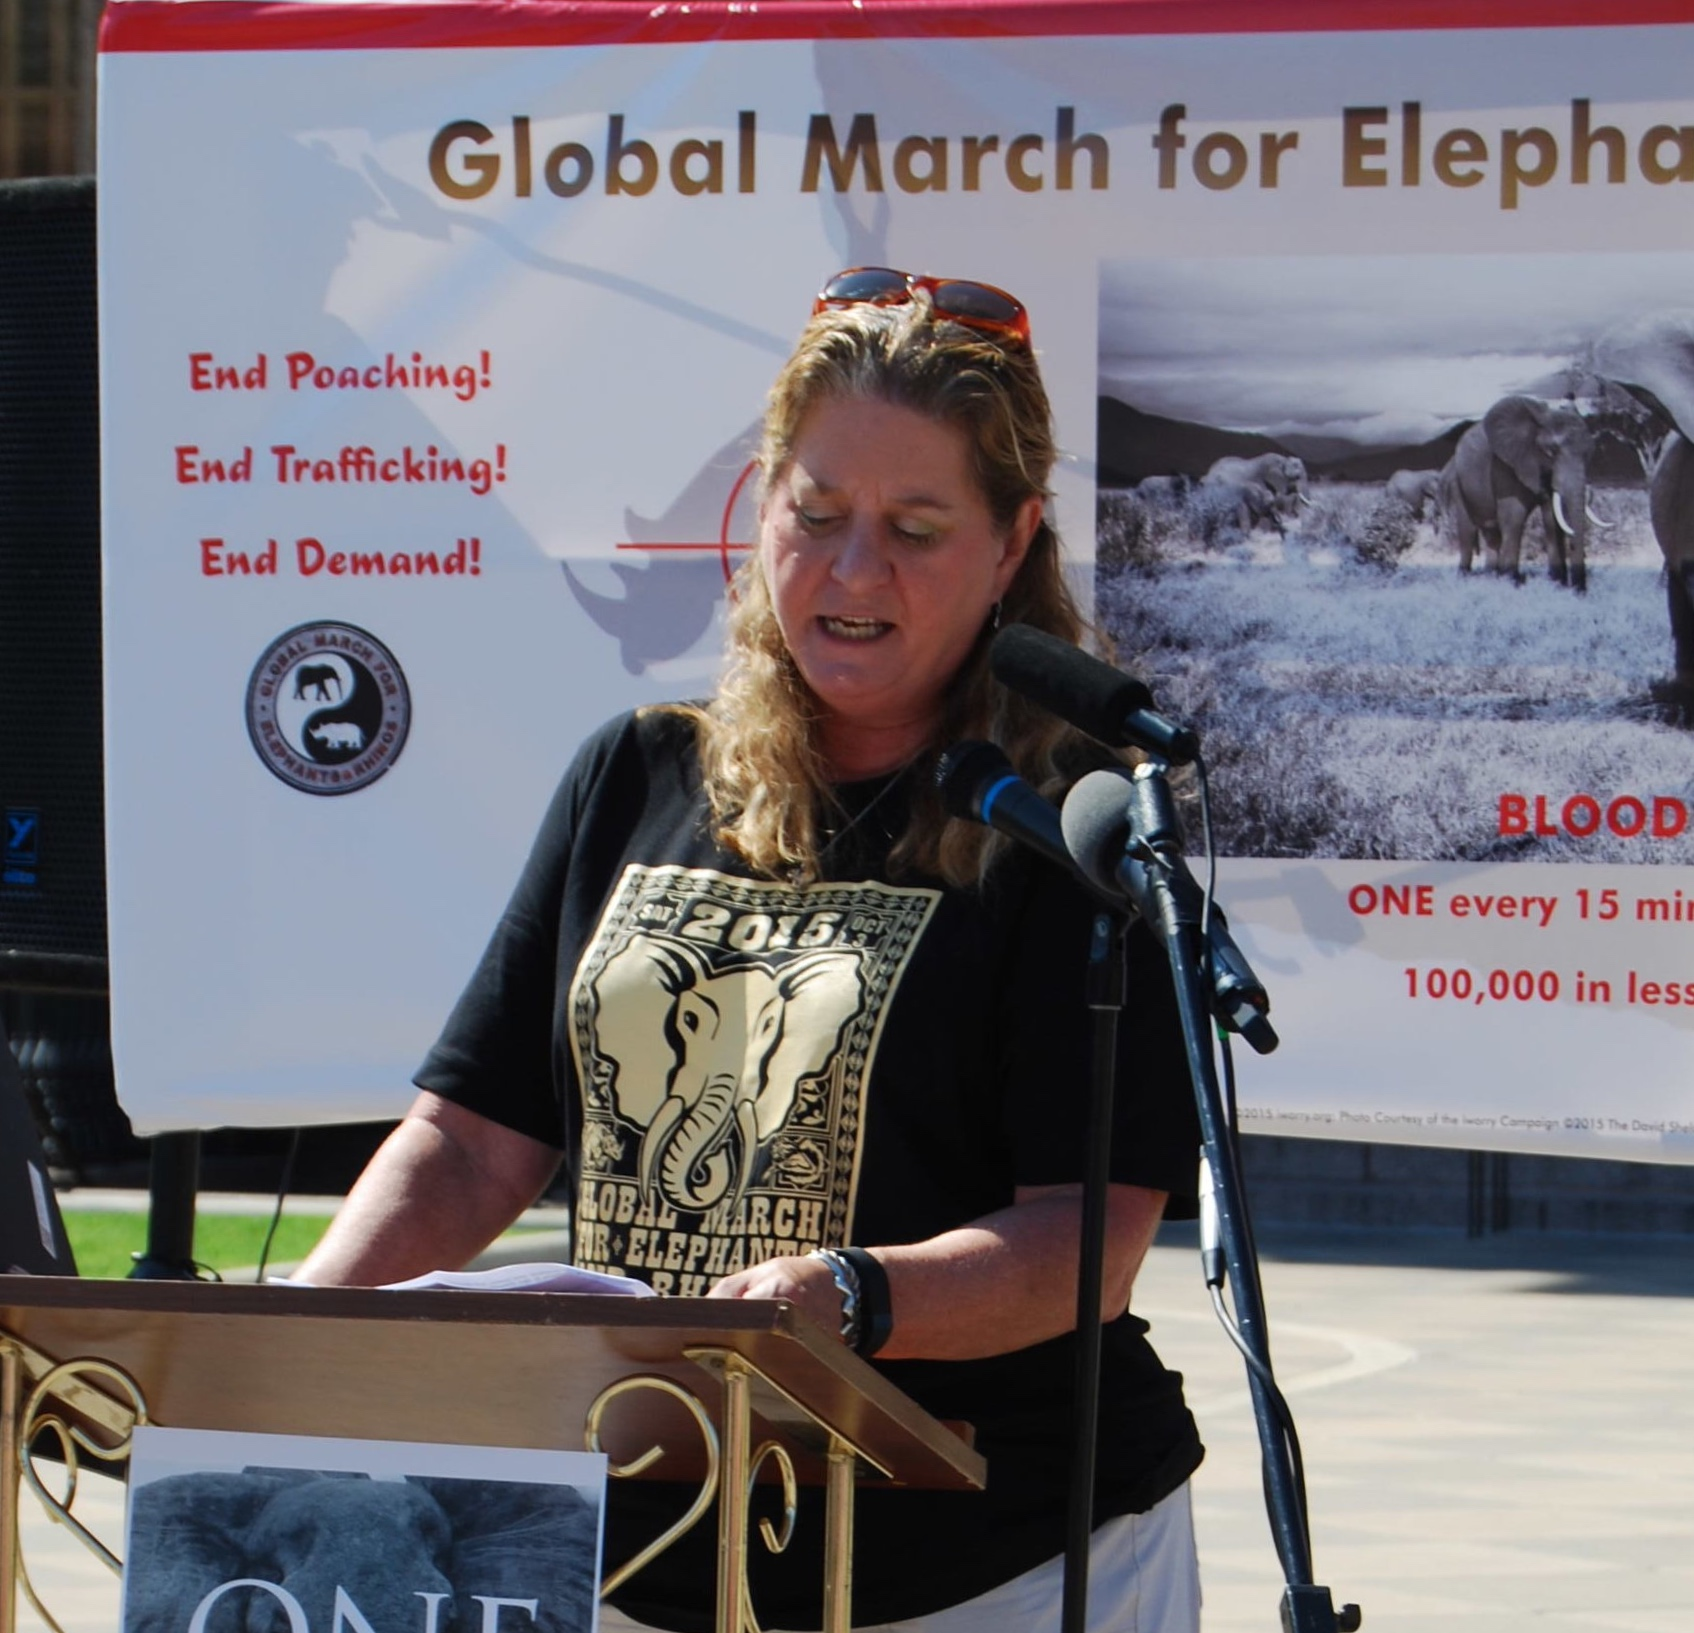 march ORGANIZER AMY DONOVAN BRINGS MARCHERS UP TO DATE ON CURRENT POACHING ISSUES AND WHAT AUSTINITES CAN DO TO HELP END THE IVORY TRADE.